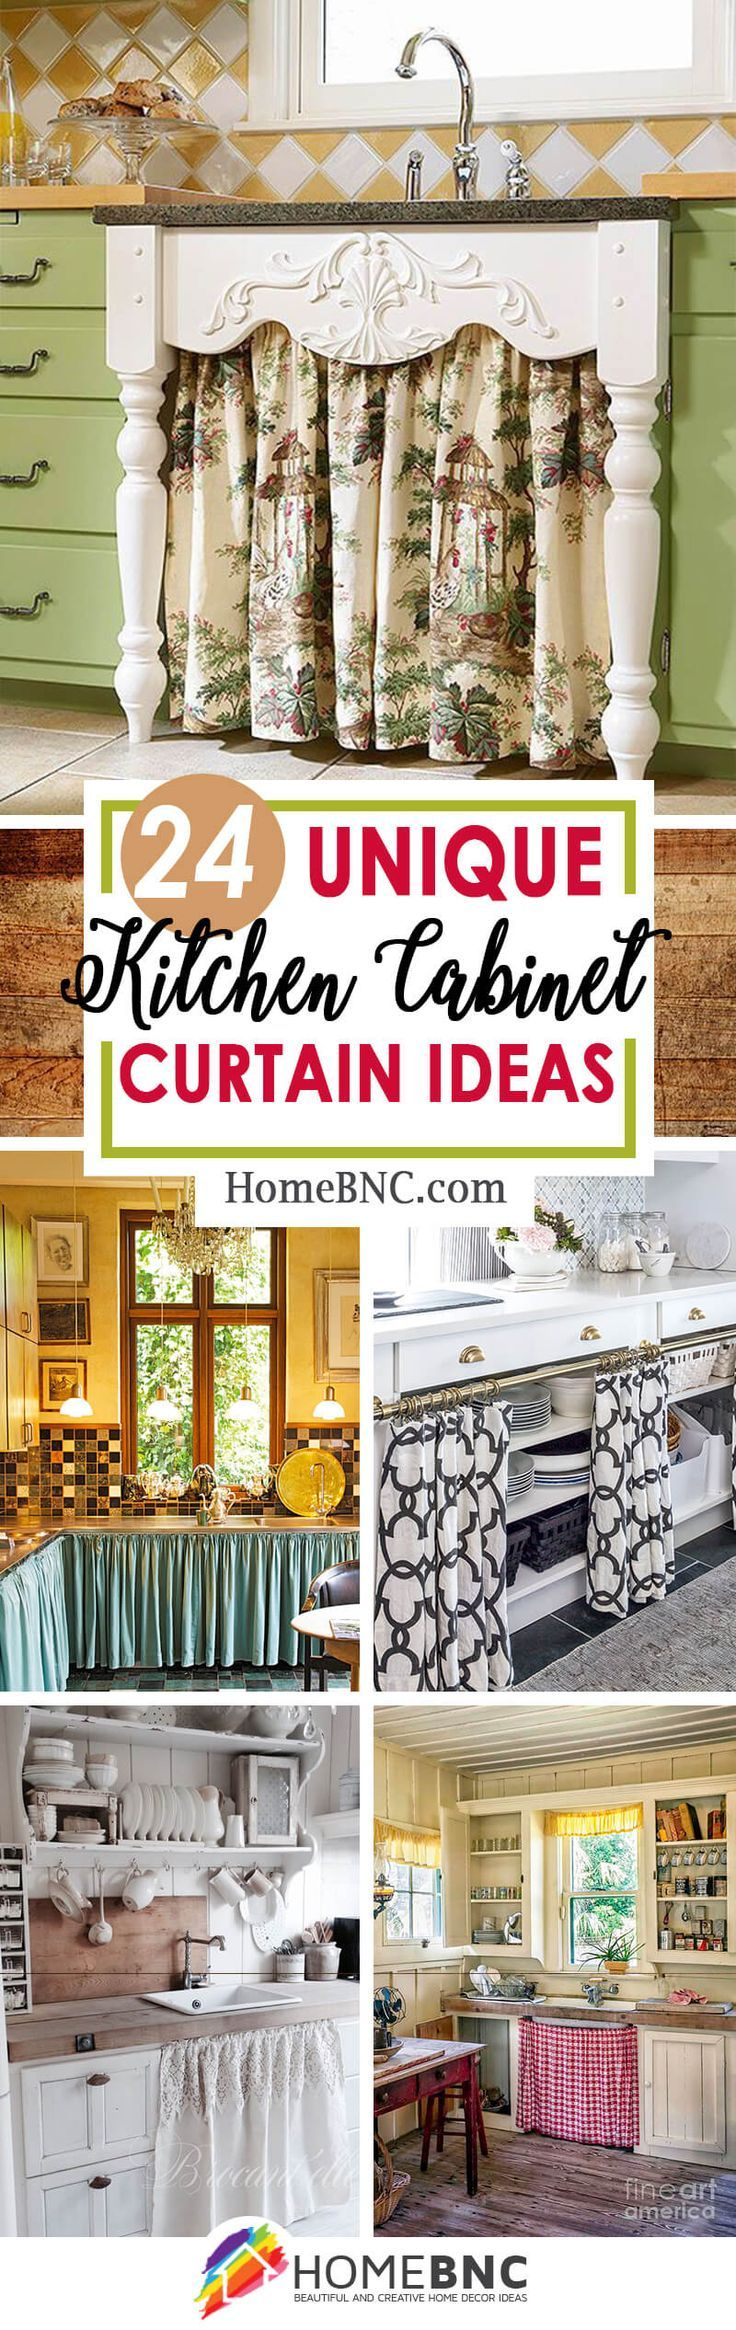 24 Unique Kitchen Cabinet Curtain Ideas For An Adorable Home Decor Style Home Decor Styles Kitchen Cabinets Kitchen Cabinet Styles